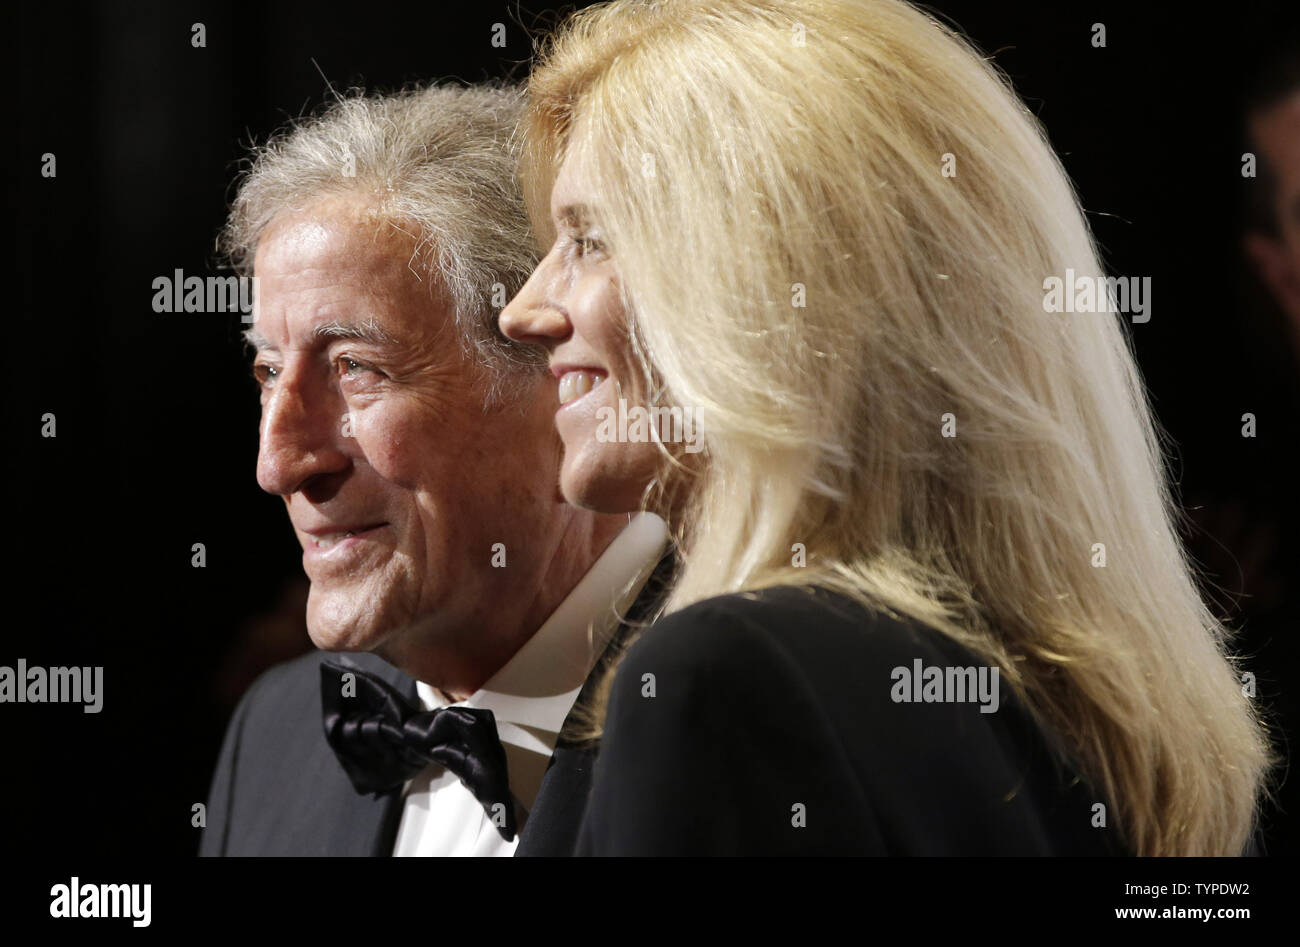 Tony Bennett and Susan Crow arrive on the red carpet at the Friars Foundation Gala honoring Robert De Niro and Carlos Slim at The Waldorf Astoria in New York City on October 7, 2014.      UPI/John Angelillo - Stock Image